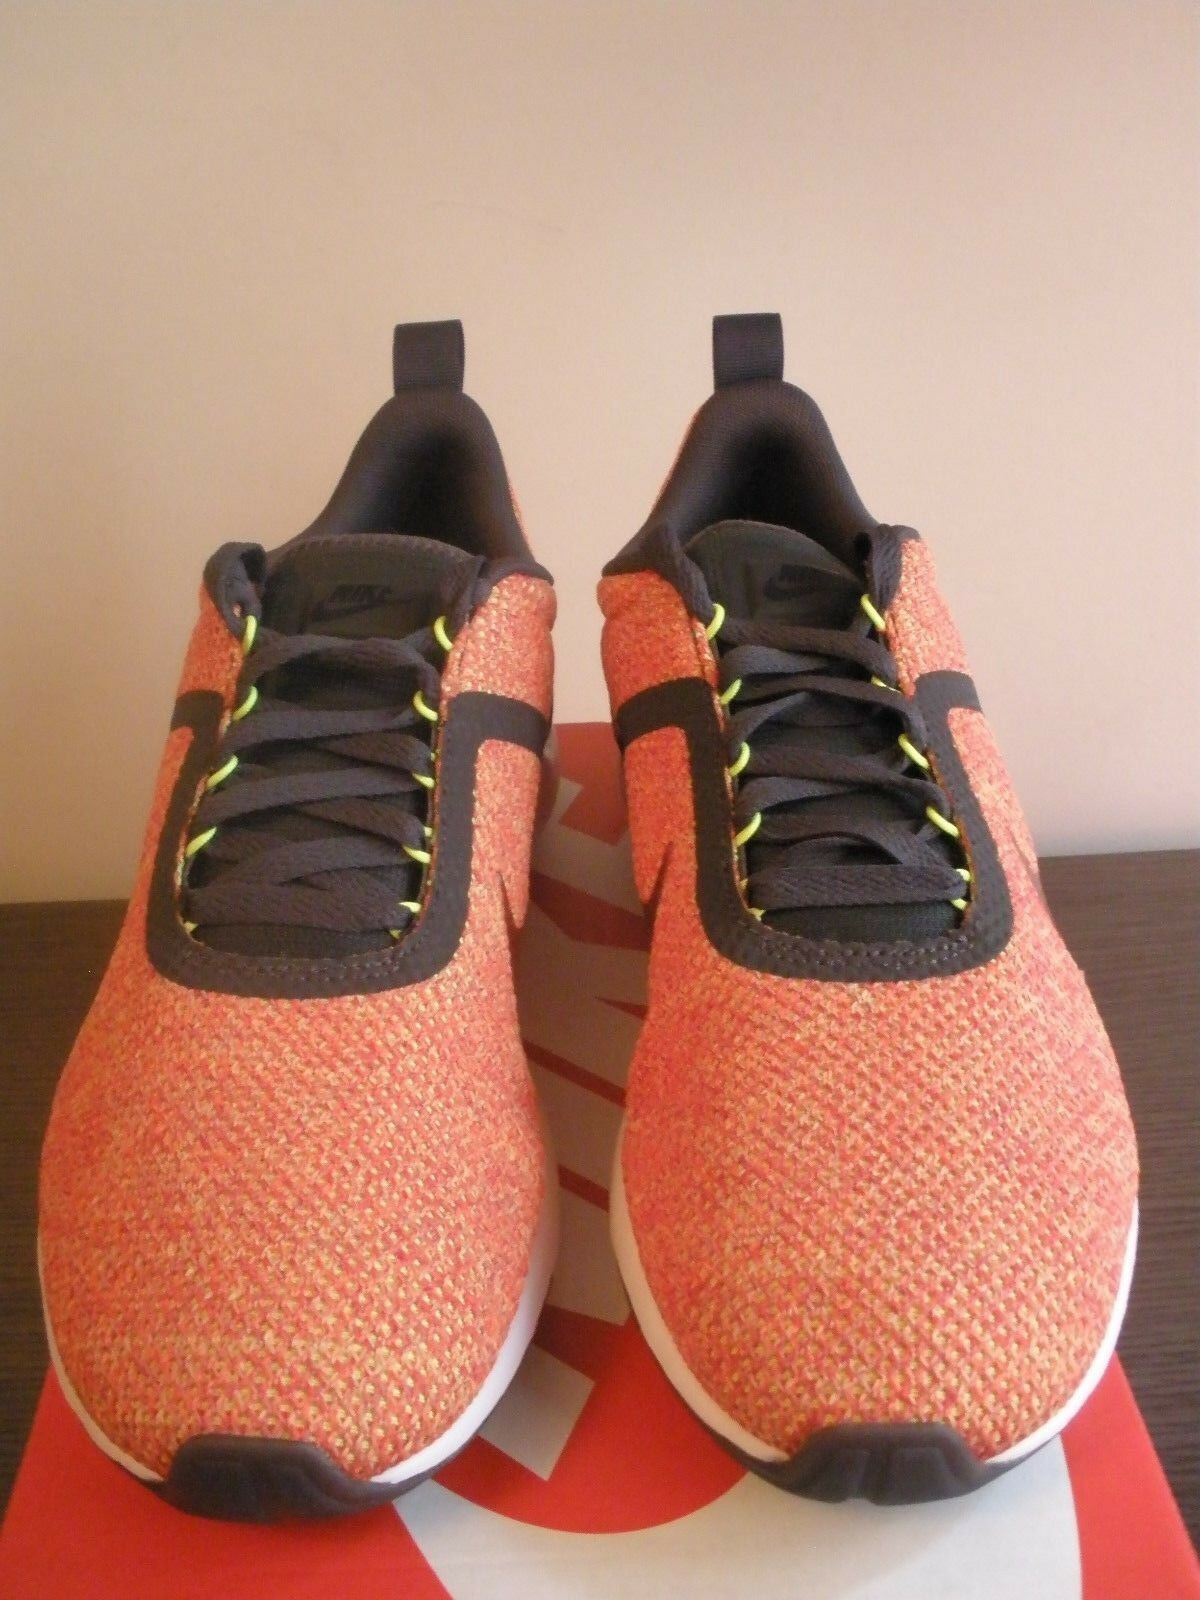 Nike 11 Lunarestoa 2 SE Knit US 11 Nike UK 10 EU 45 151c2b